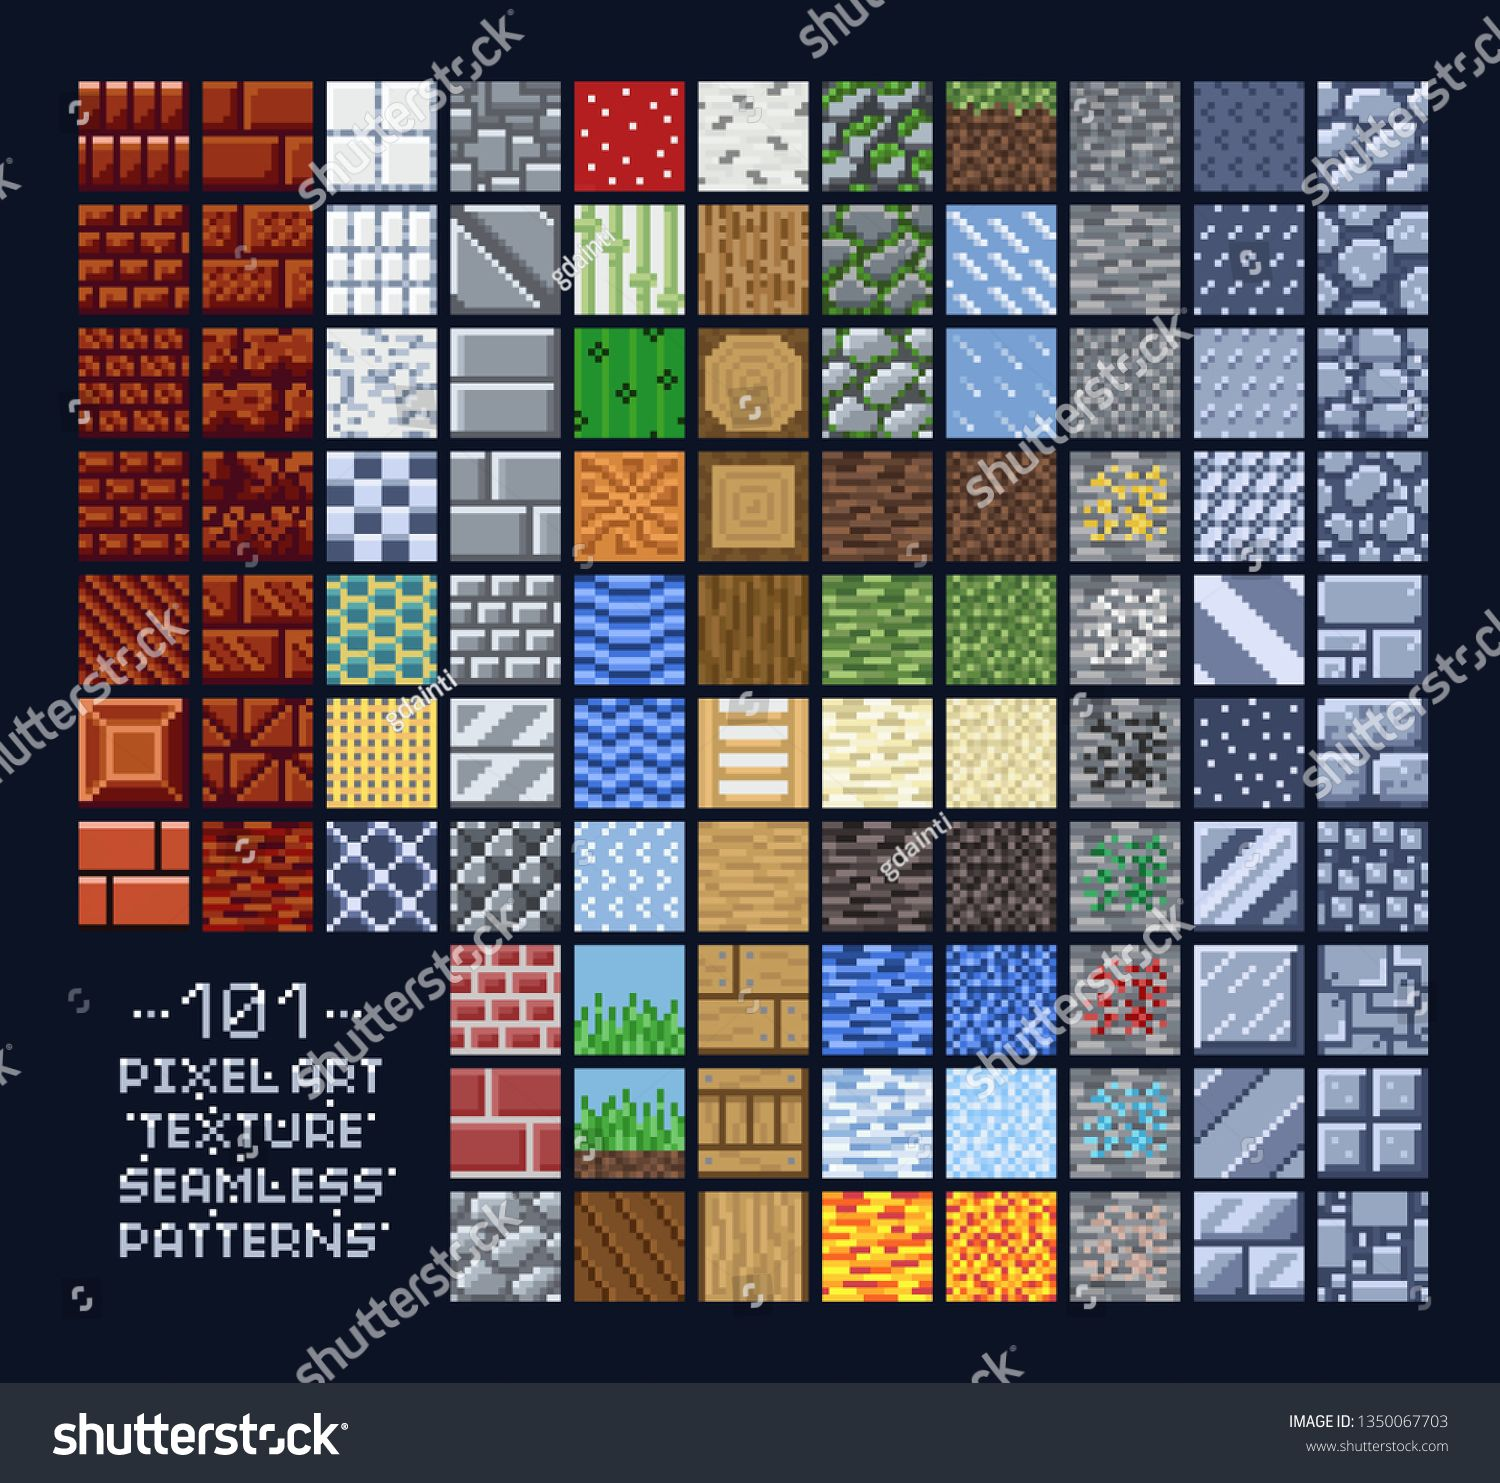 16X16 Tileset pixel art style set of different 16x16 seamless texture